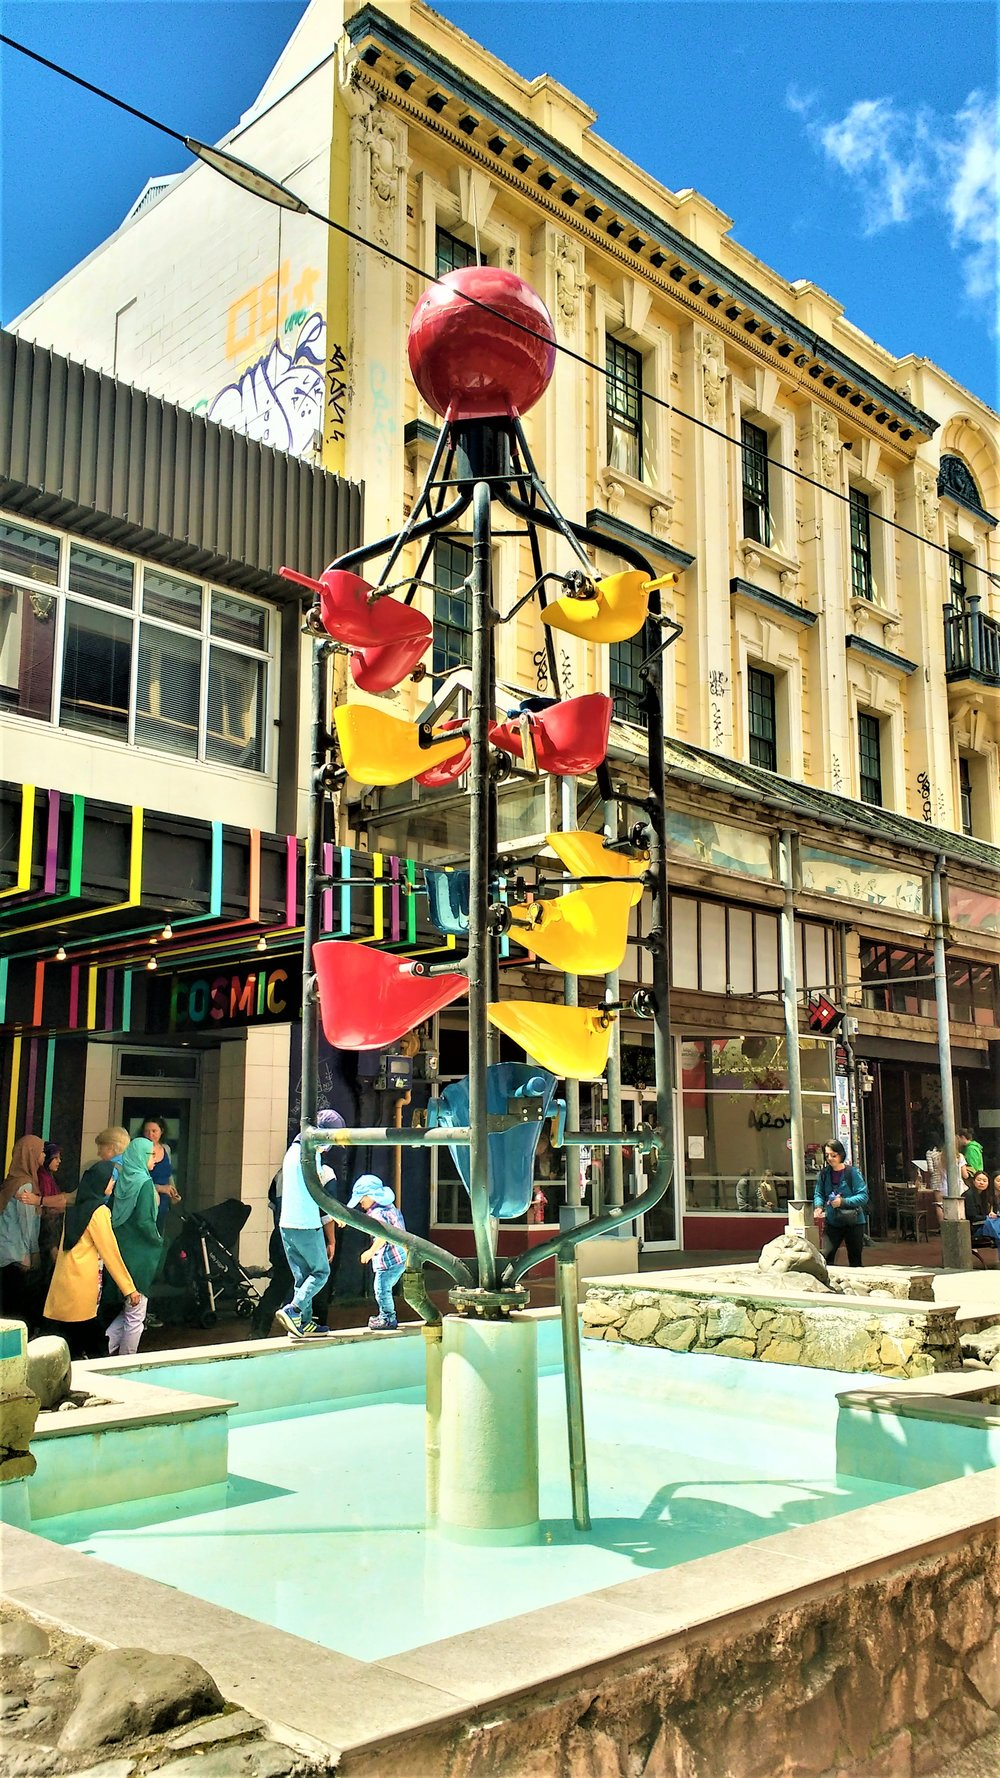 The iconic Cuba Street bucket fountain is one of the best free things to do in wellington